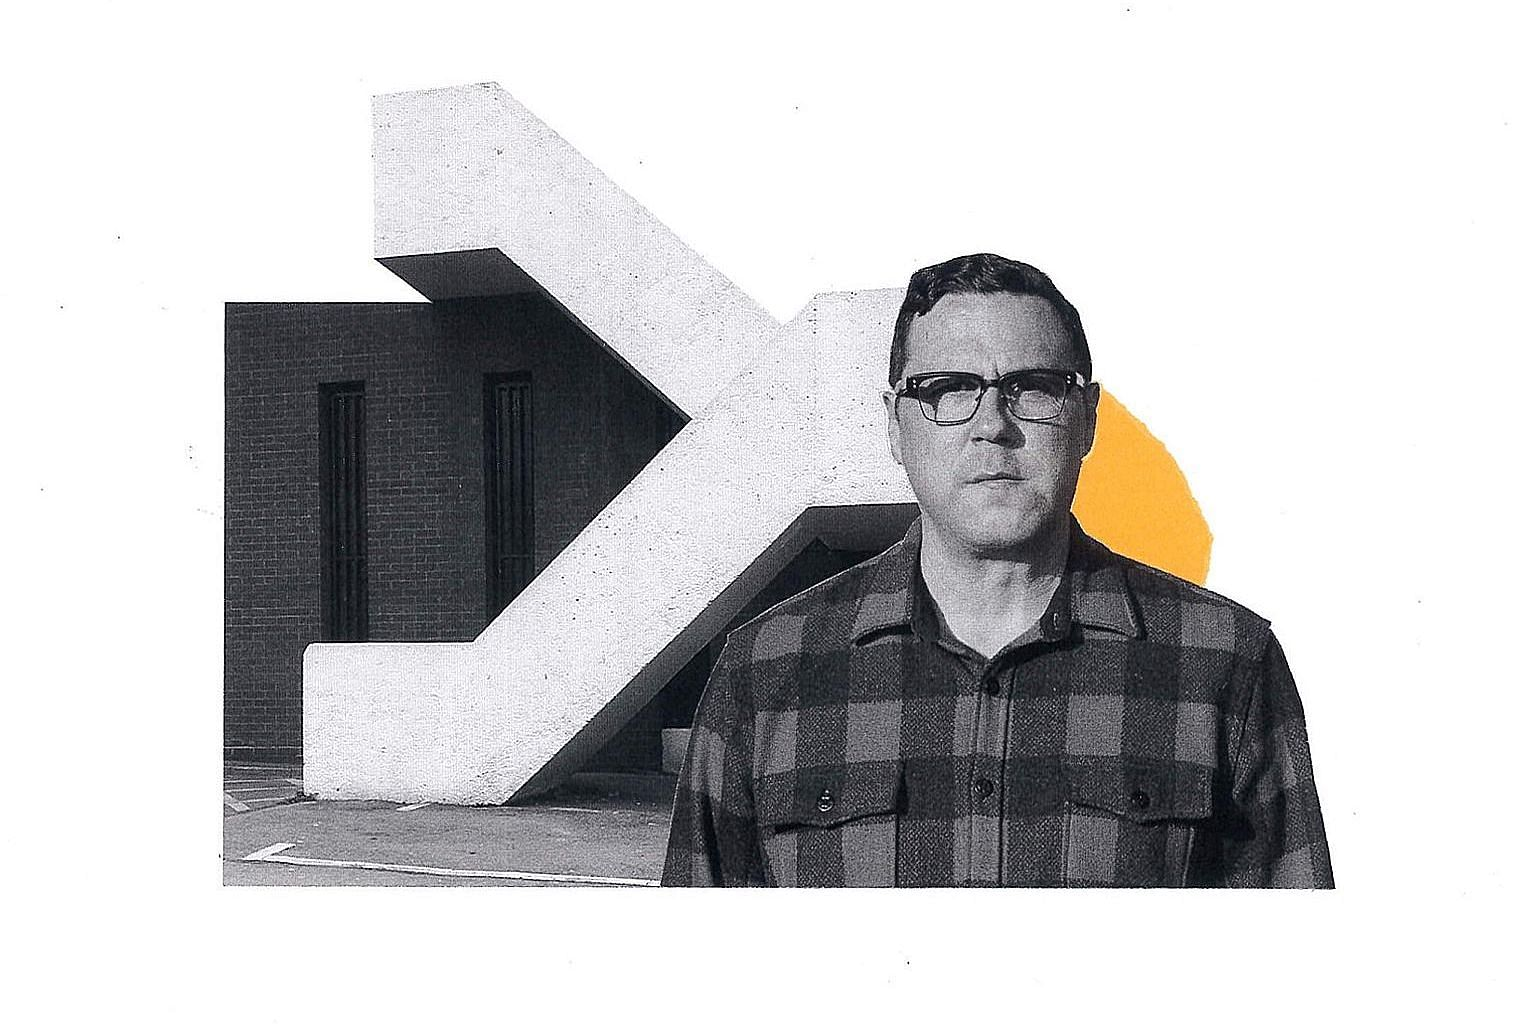 The Horizon Just Laughed is the 13th solo album of Seattle indie-folk troubadour Damien Jurado (above).